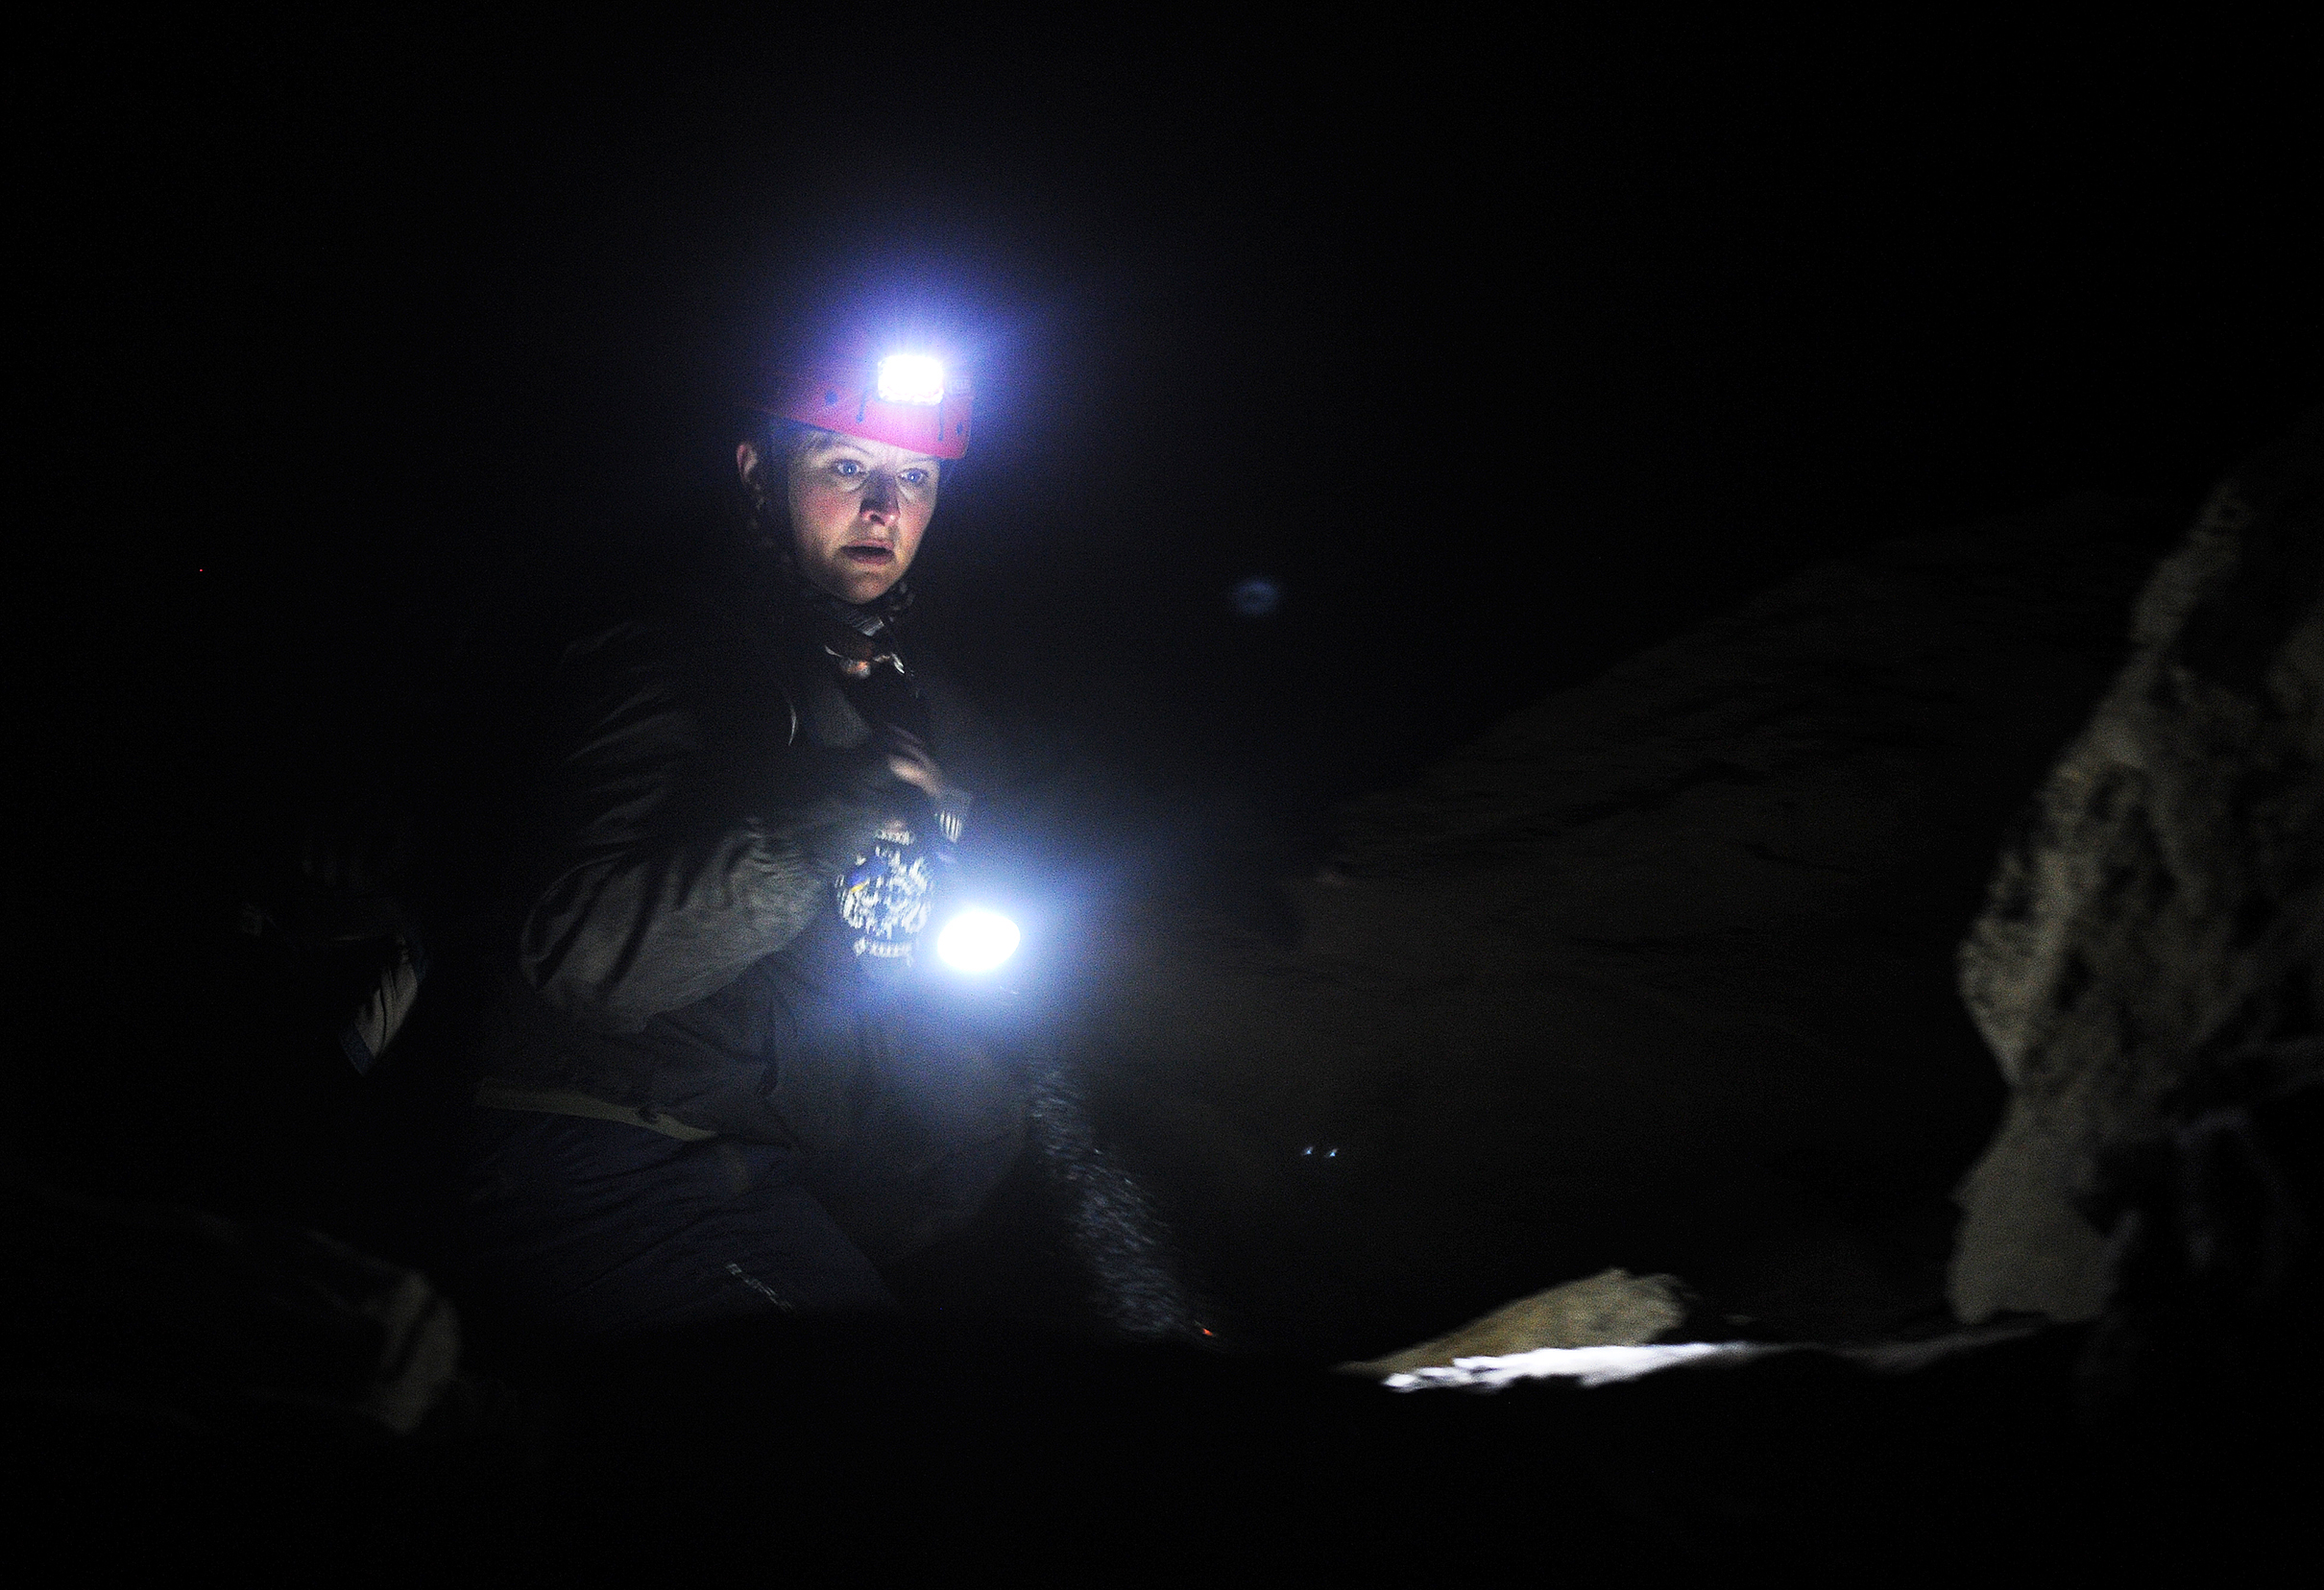 Daria Van Dolsen, a graduate student at Idaho State University studying anthropology, searches rock formations in the back of the cave for any unseen crevices that the head could have been hidden in.